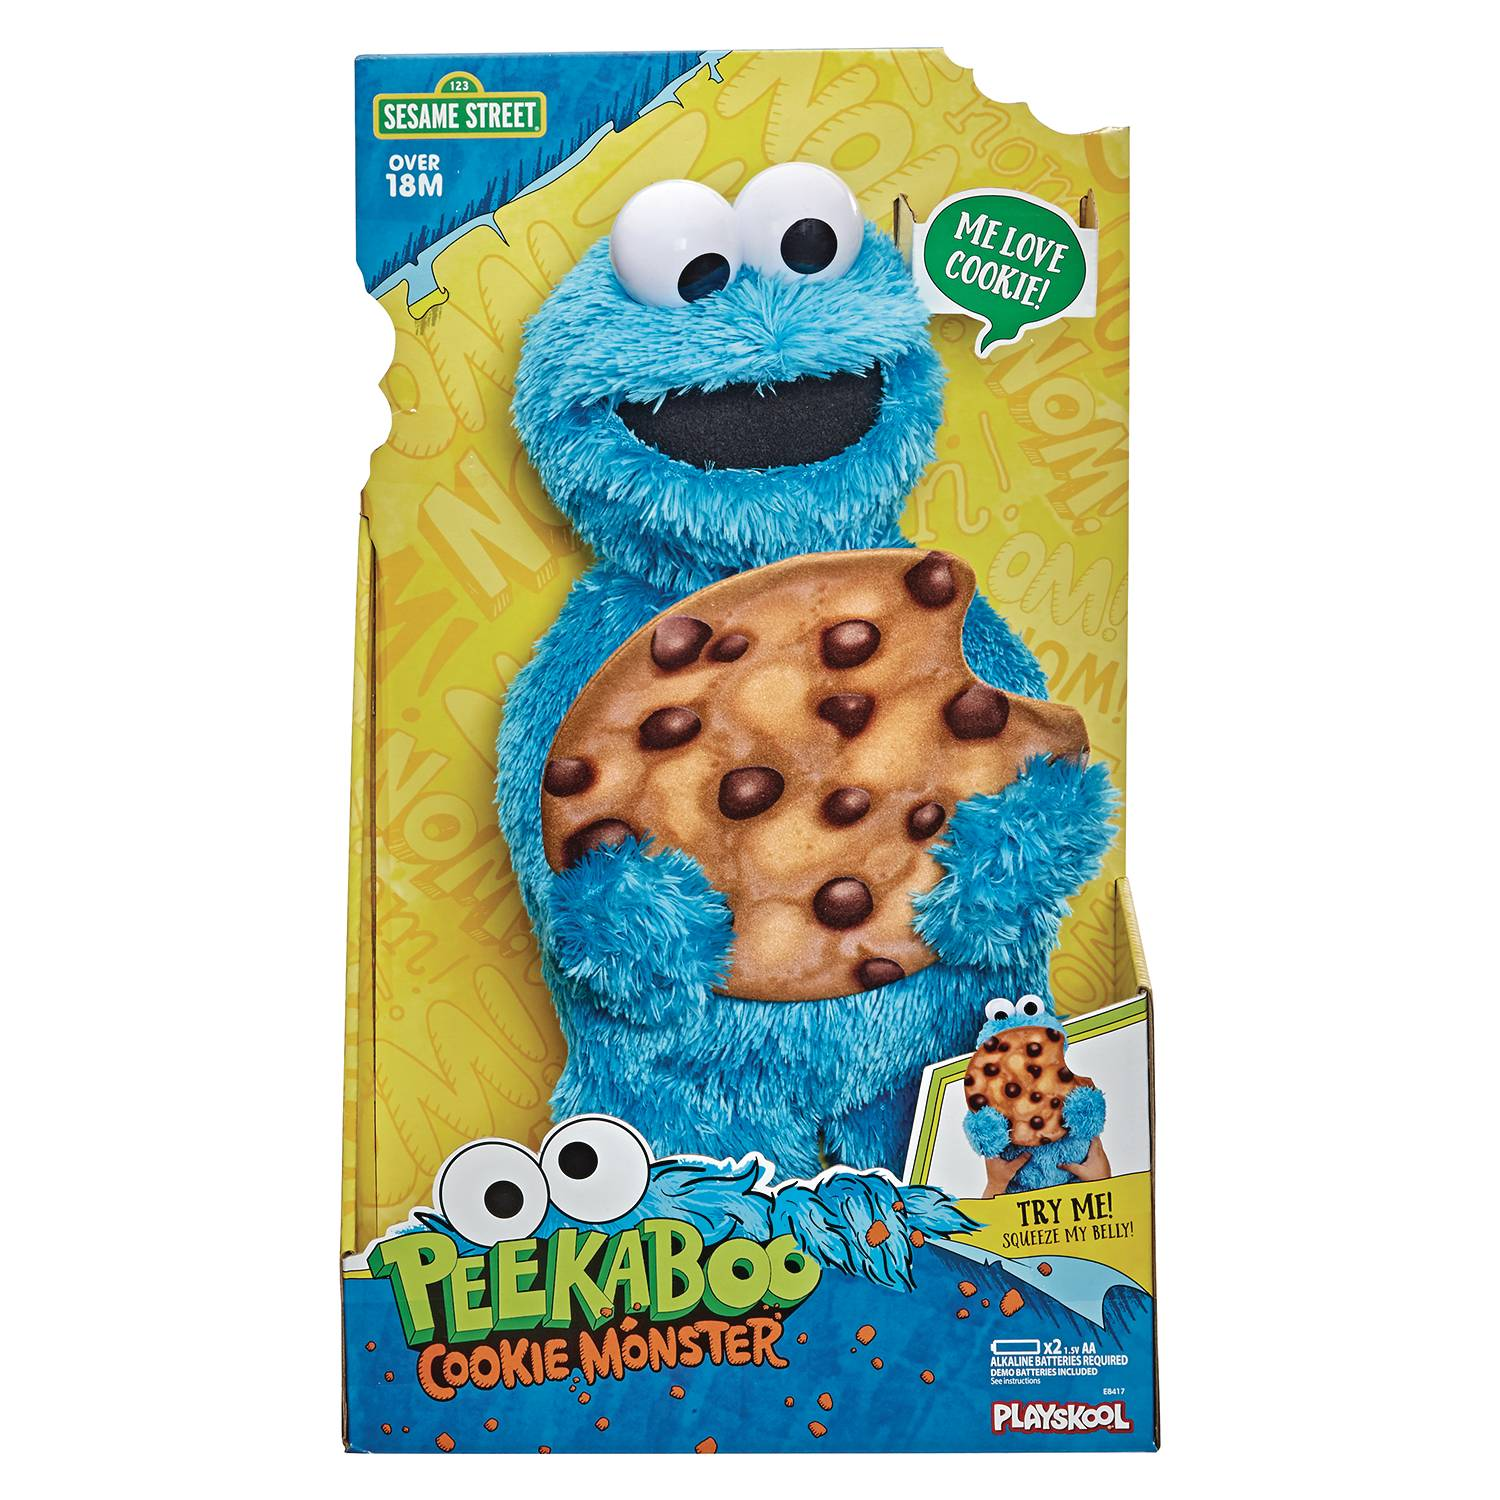 SESAME STREET PEEKABOO COOKIE MONSTER CS